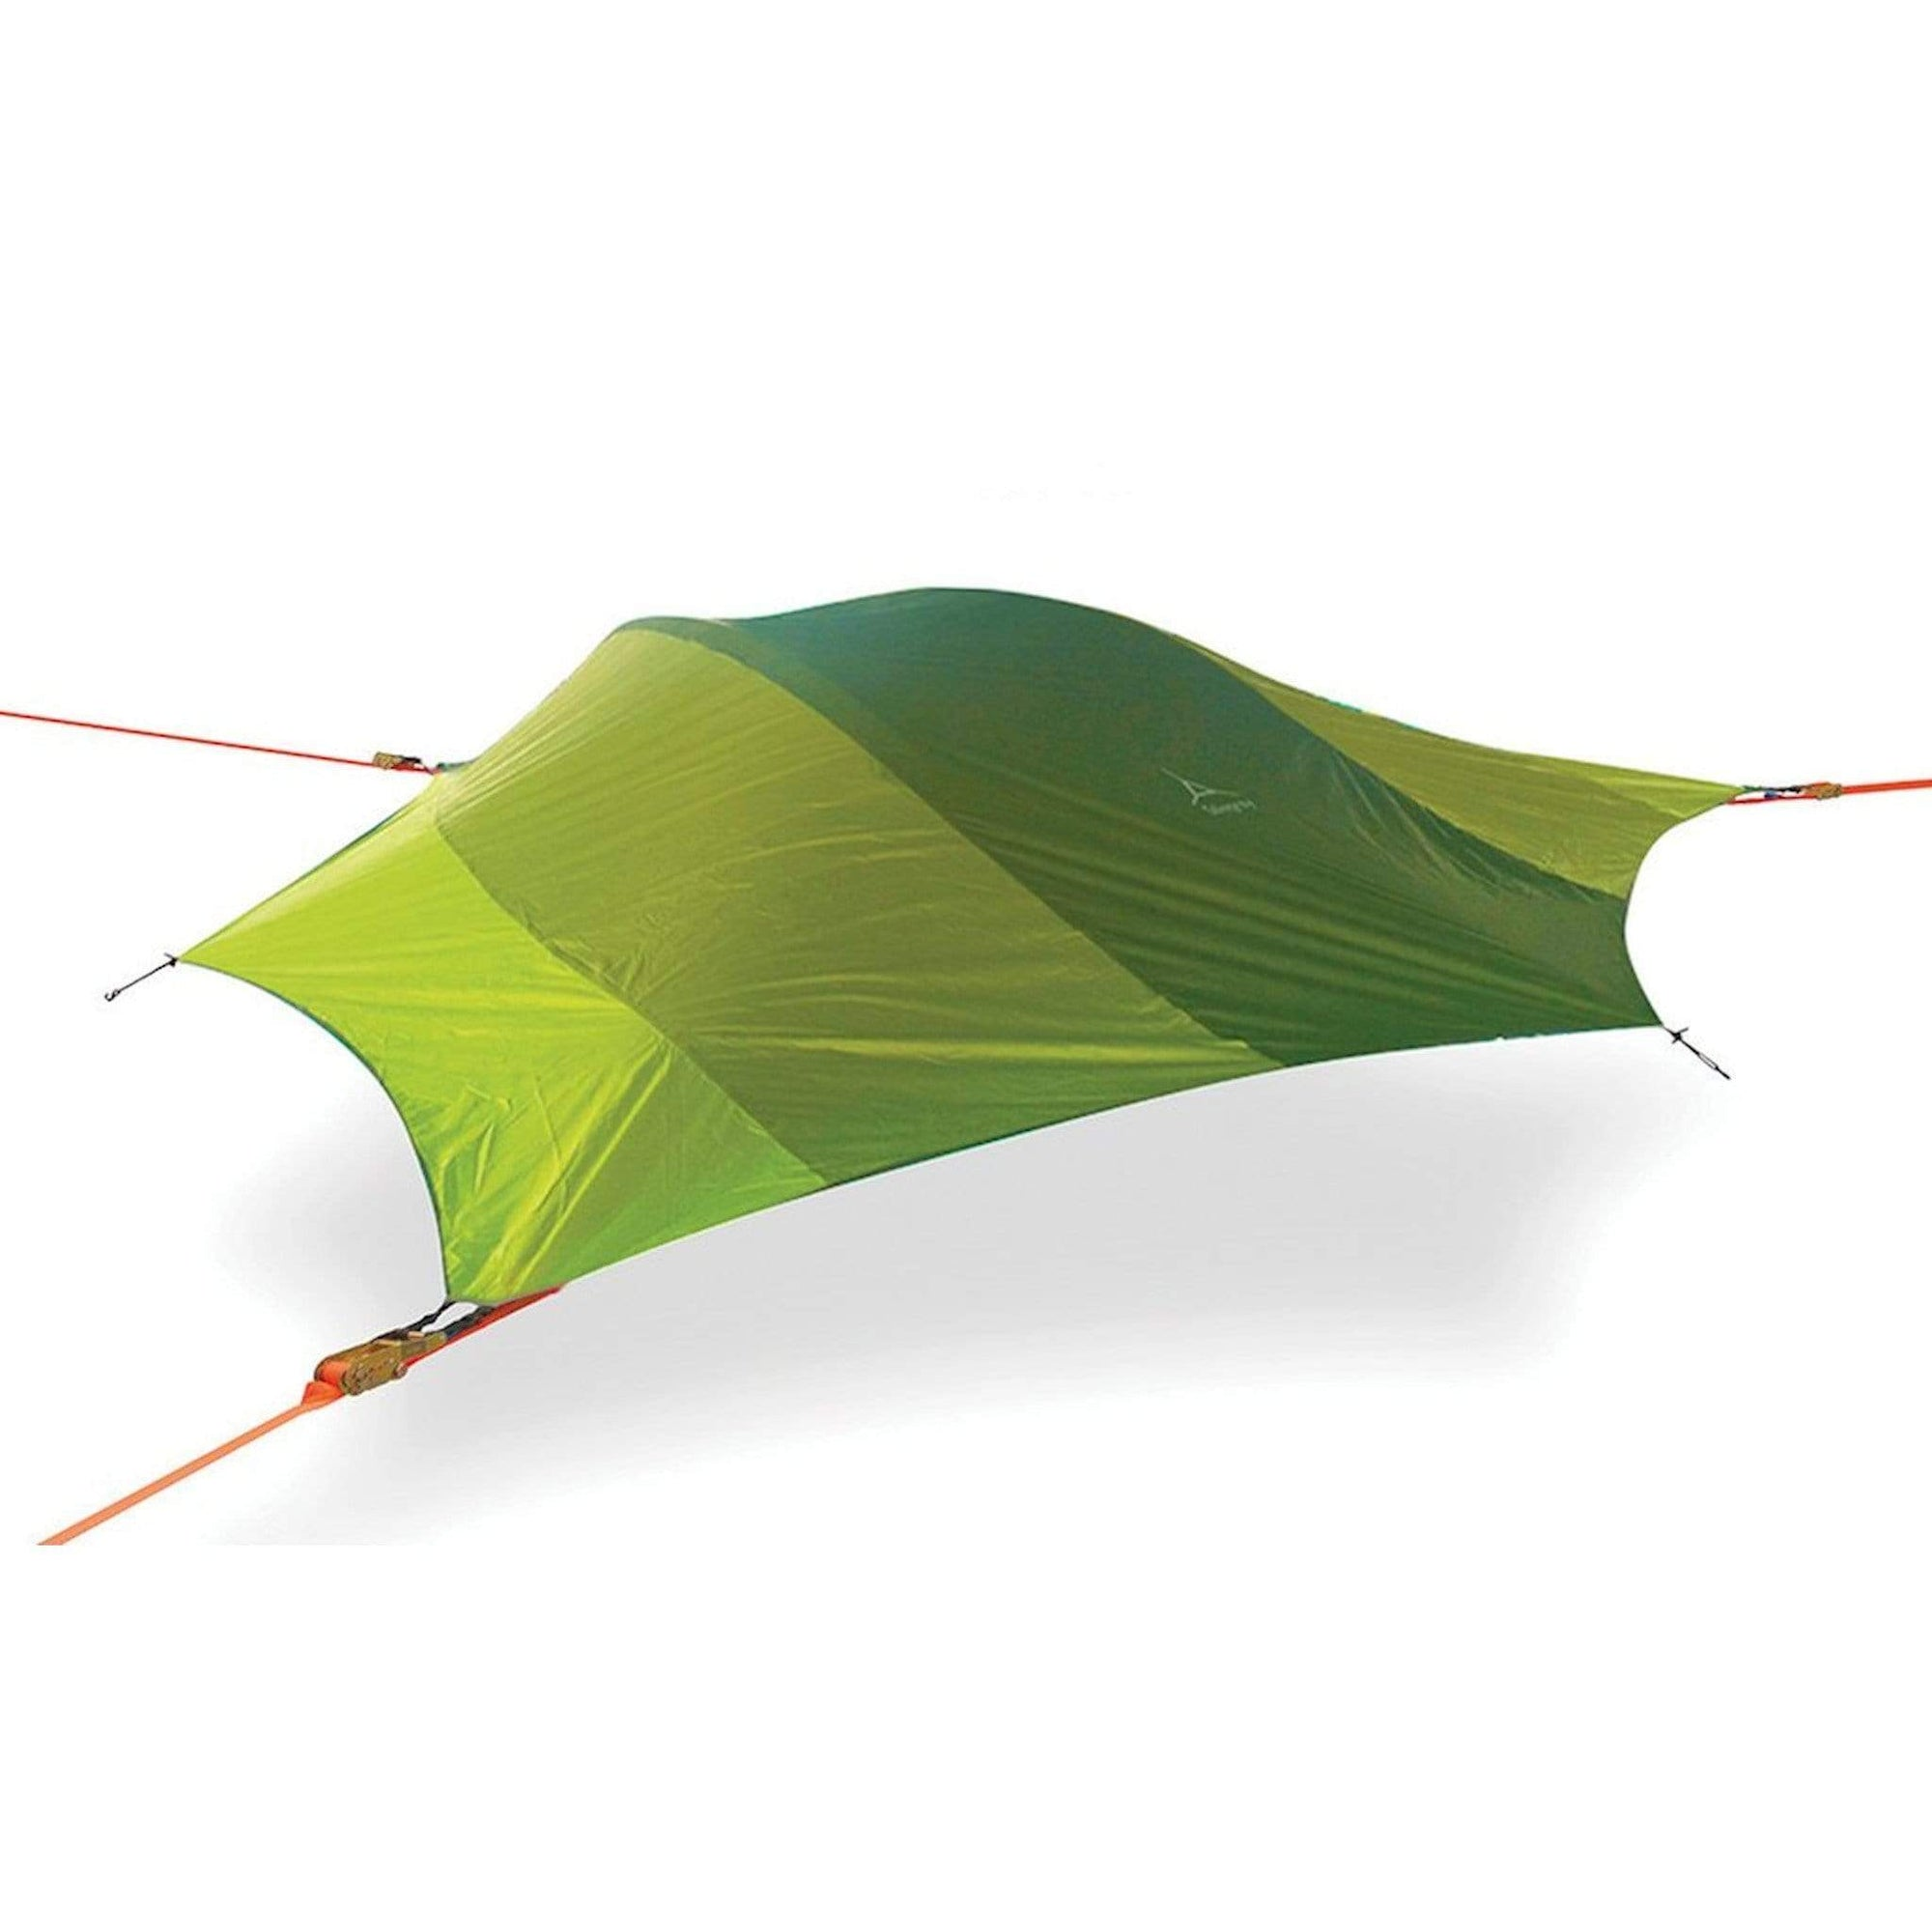 Tentsile Accessories Stingray / Tentsile Rainforest Green Spare Tree Tent Rain Fly